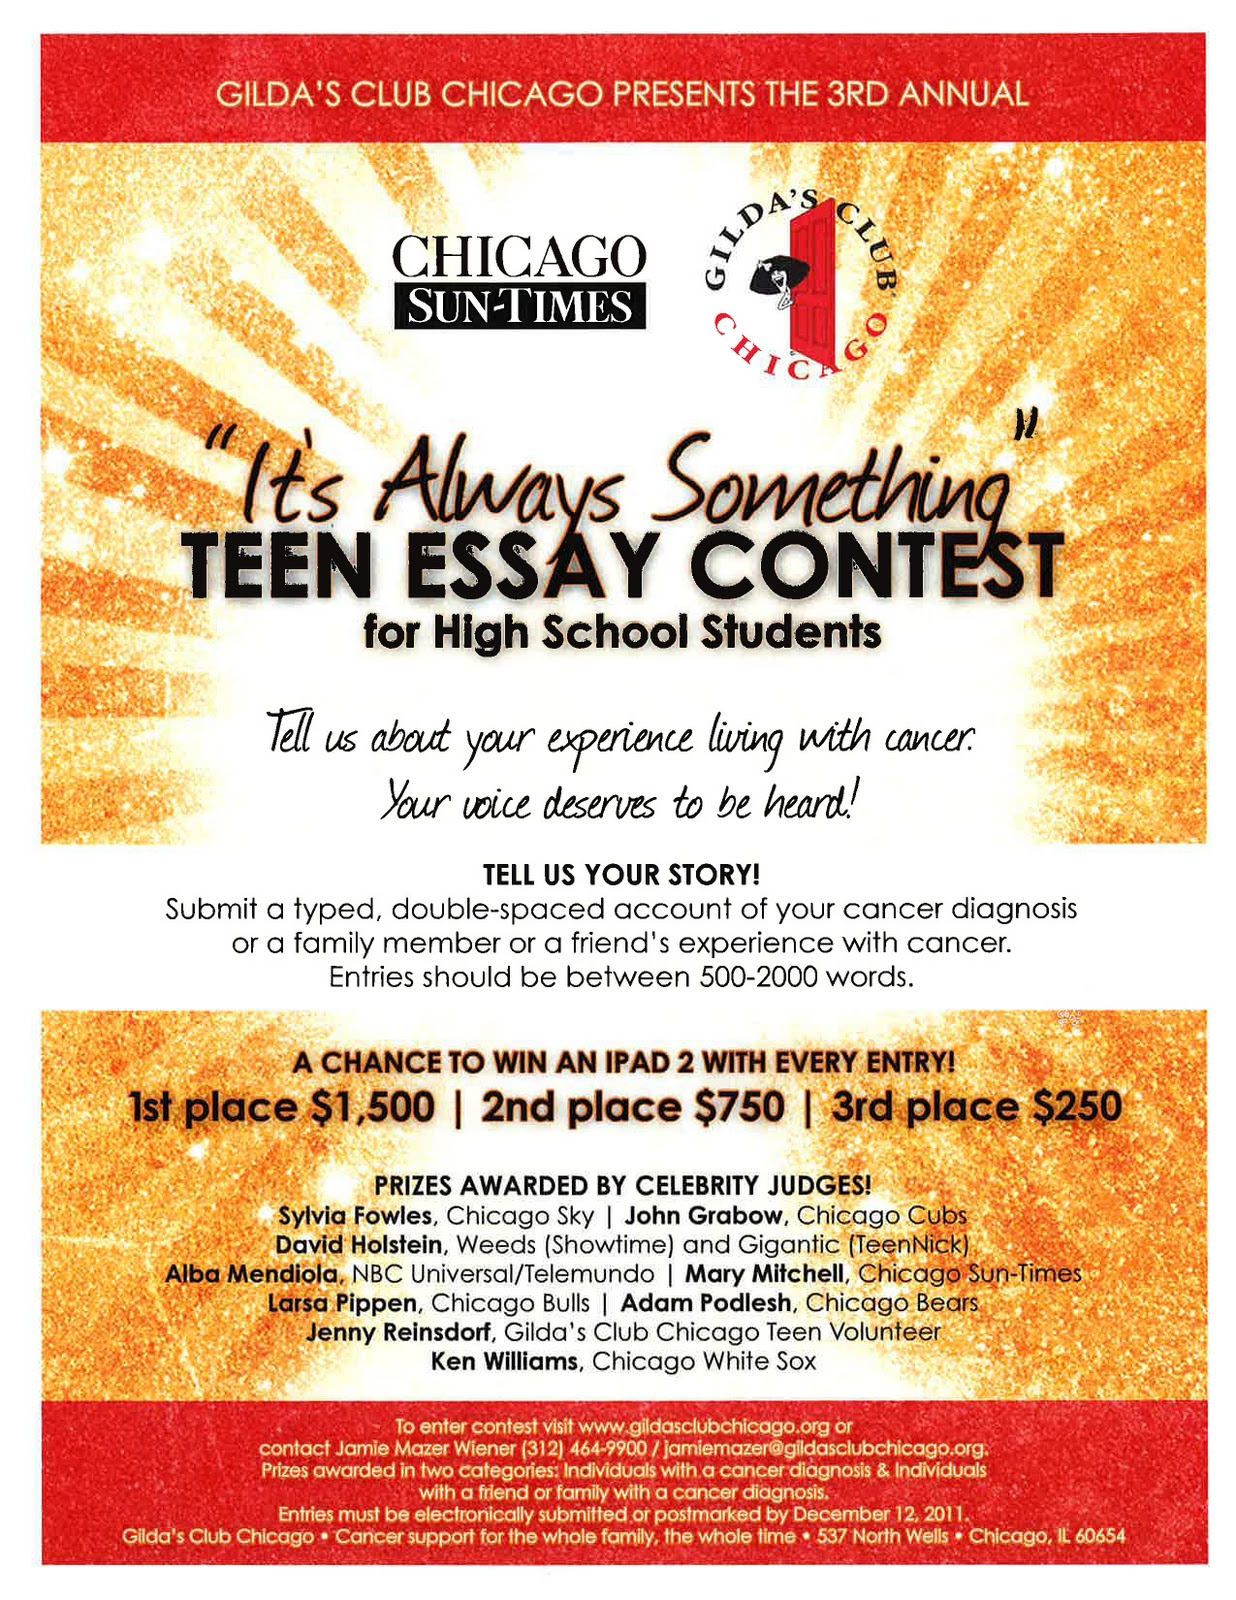 gilda s blah blah blog one last call to action here we are looking for high school students a story to share it s always something teen essay contest begins now